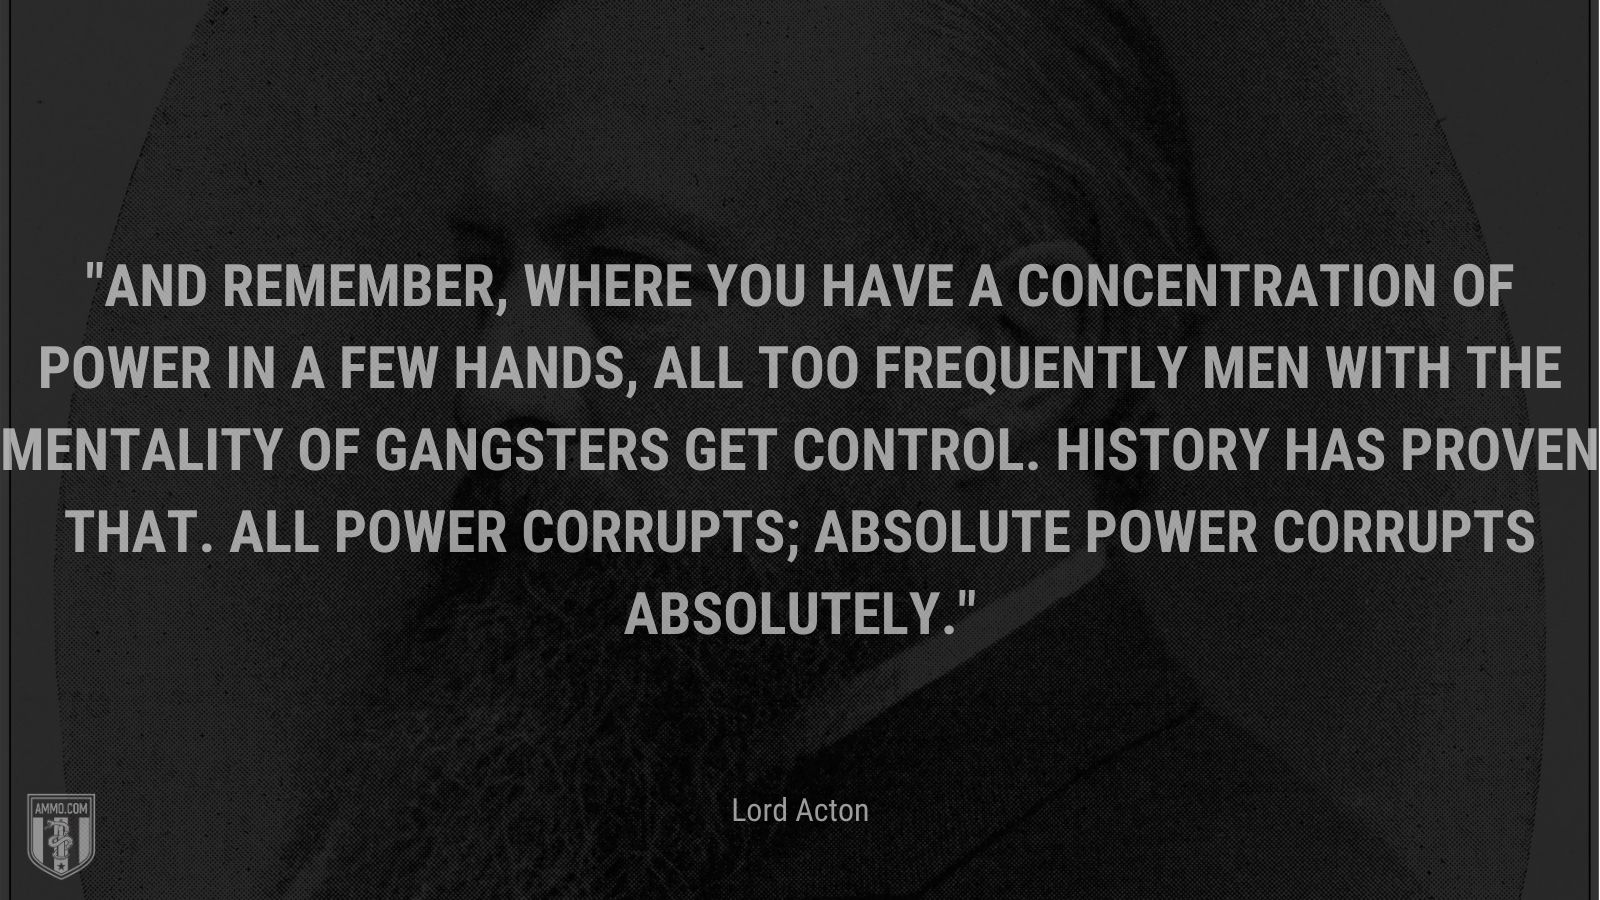 """""""And remember, where you have a concentration of power in a few hands, all too frequently men with the mentality of gangsters get control. History has proven that. All power corrupts; absolute power corrupts absolutely."""" - Lord Acton"""